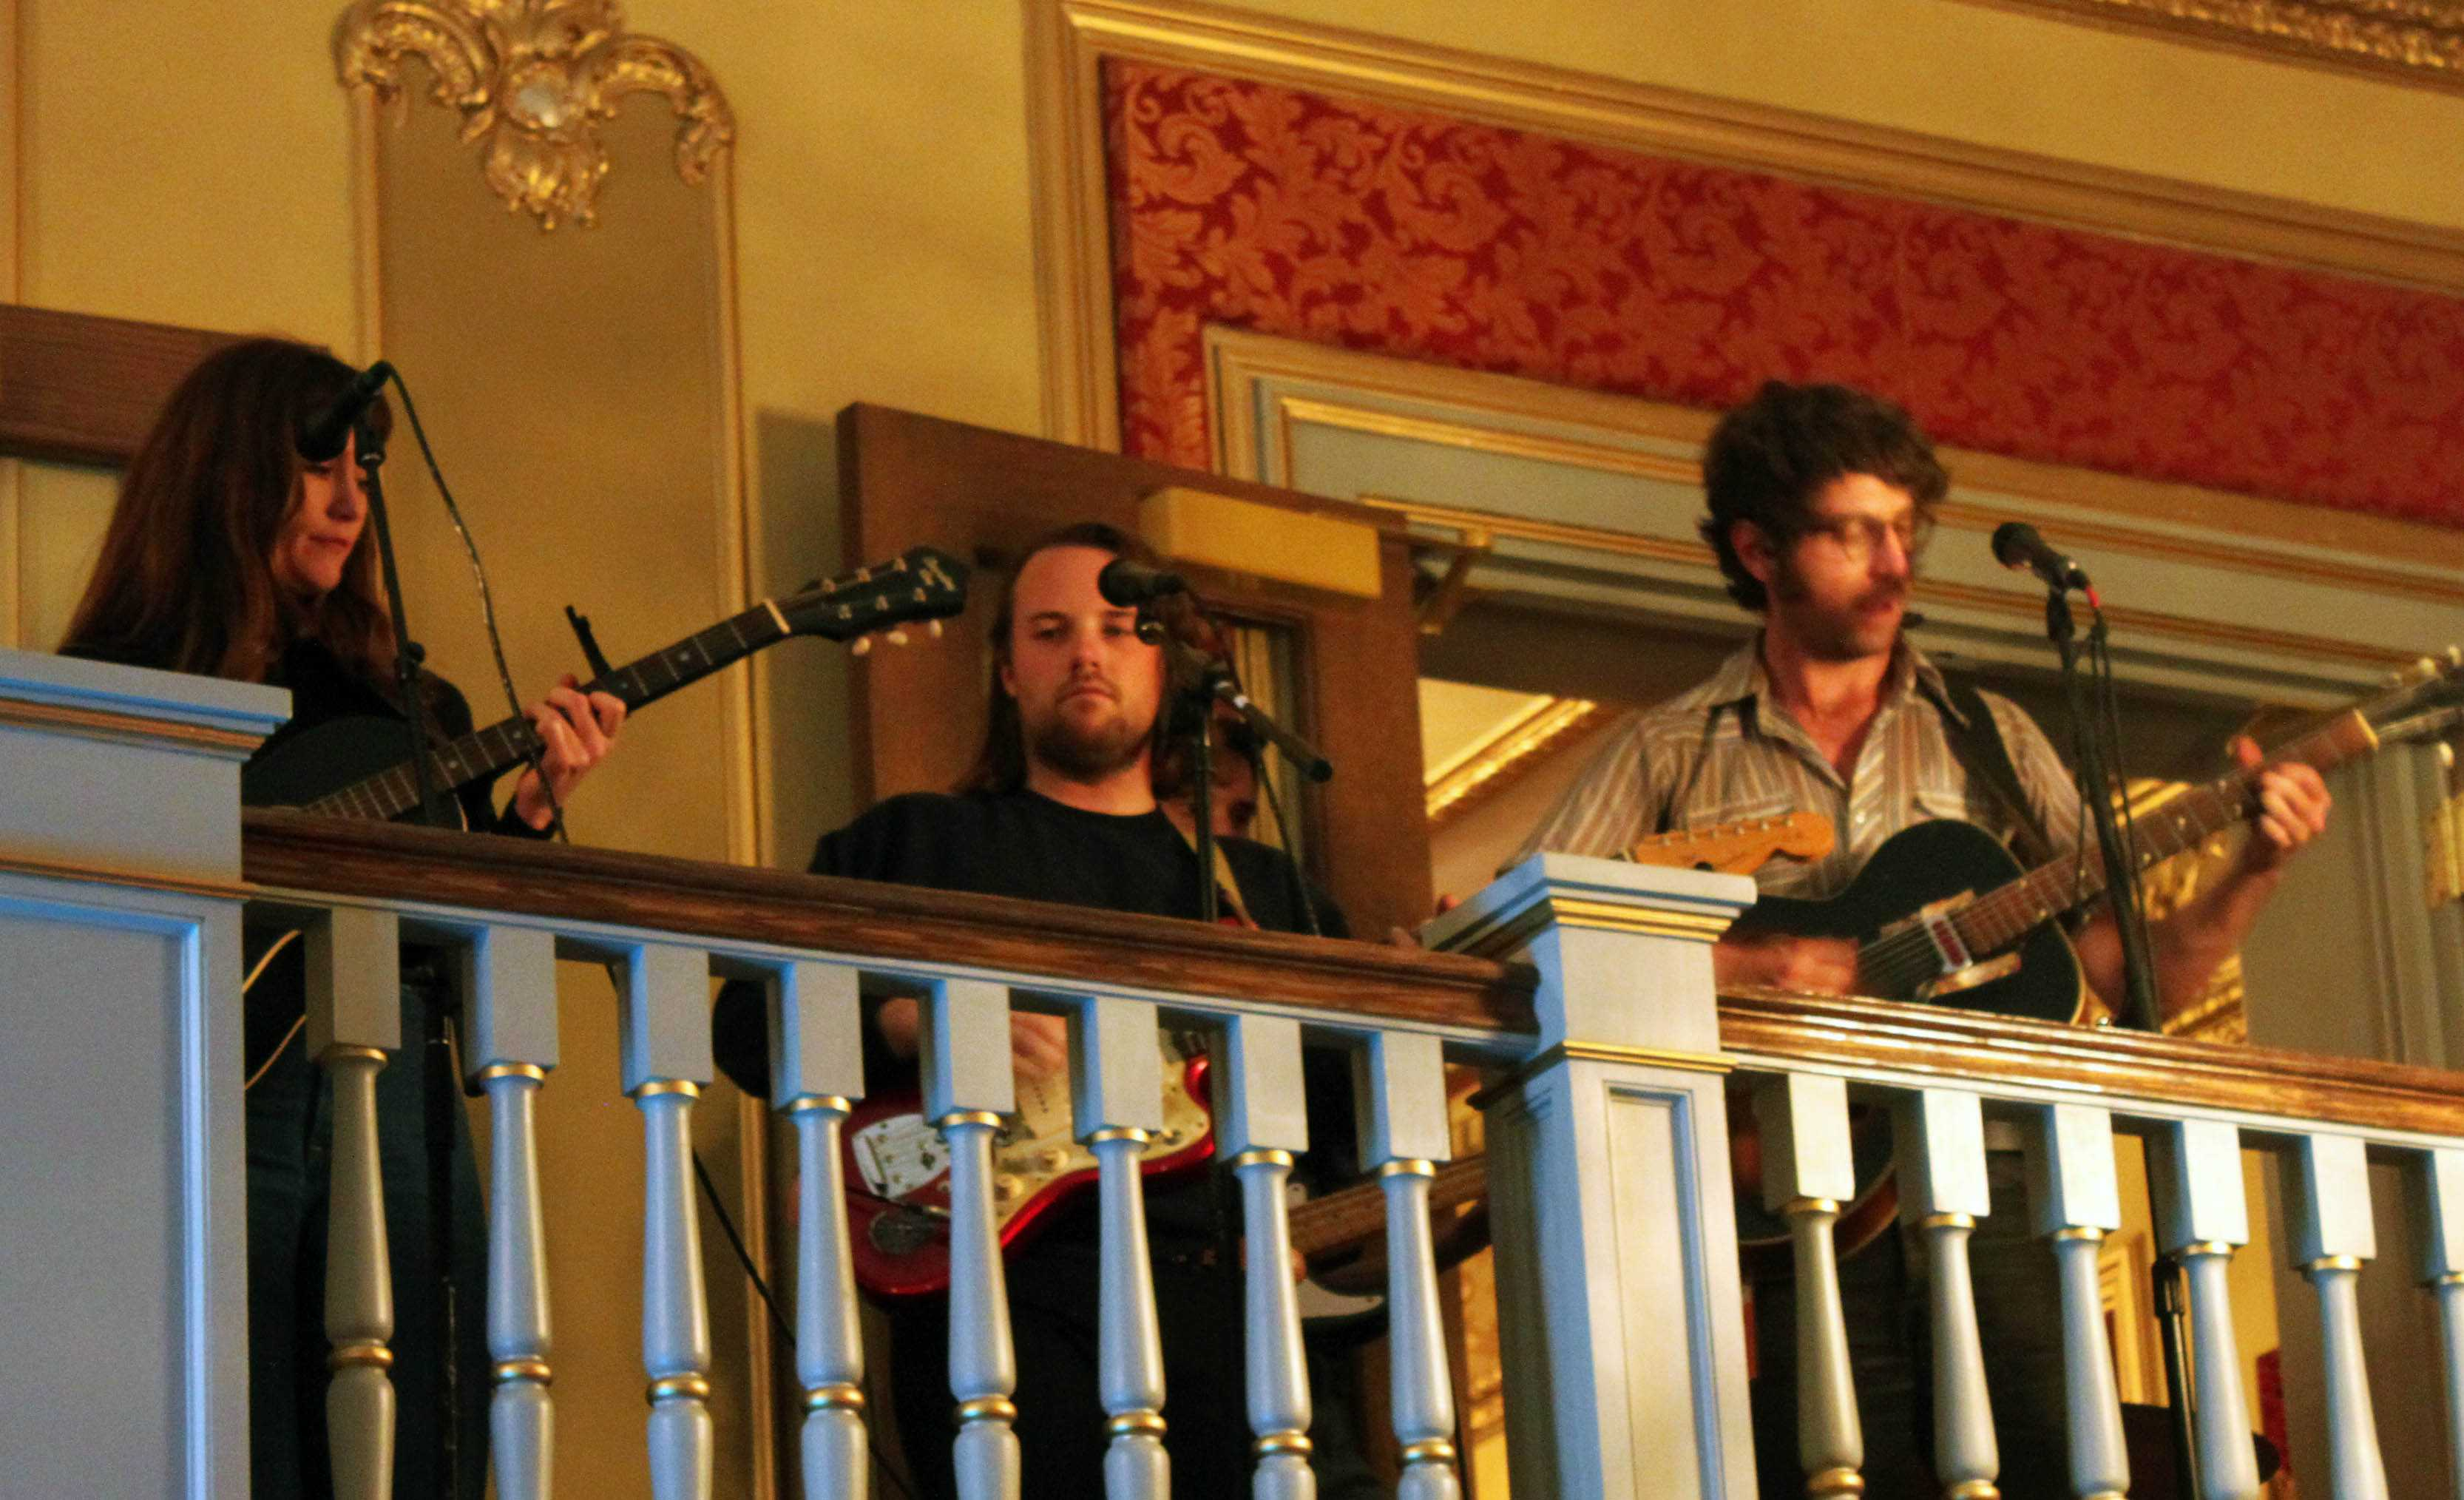 Local bands provides music, adding to the merriment of the party.